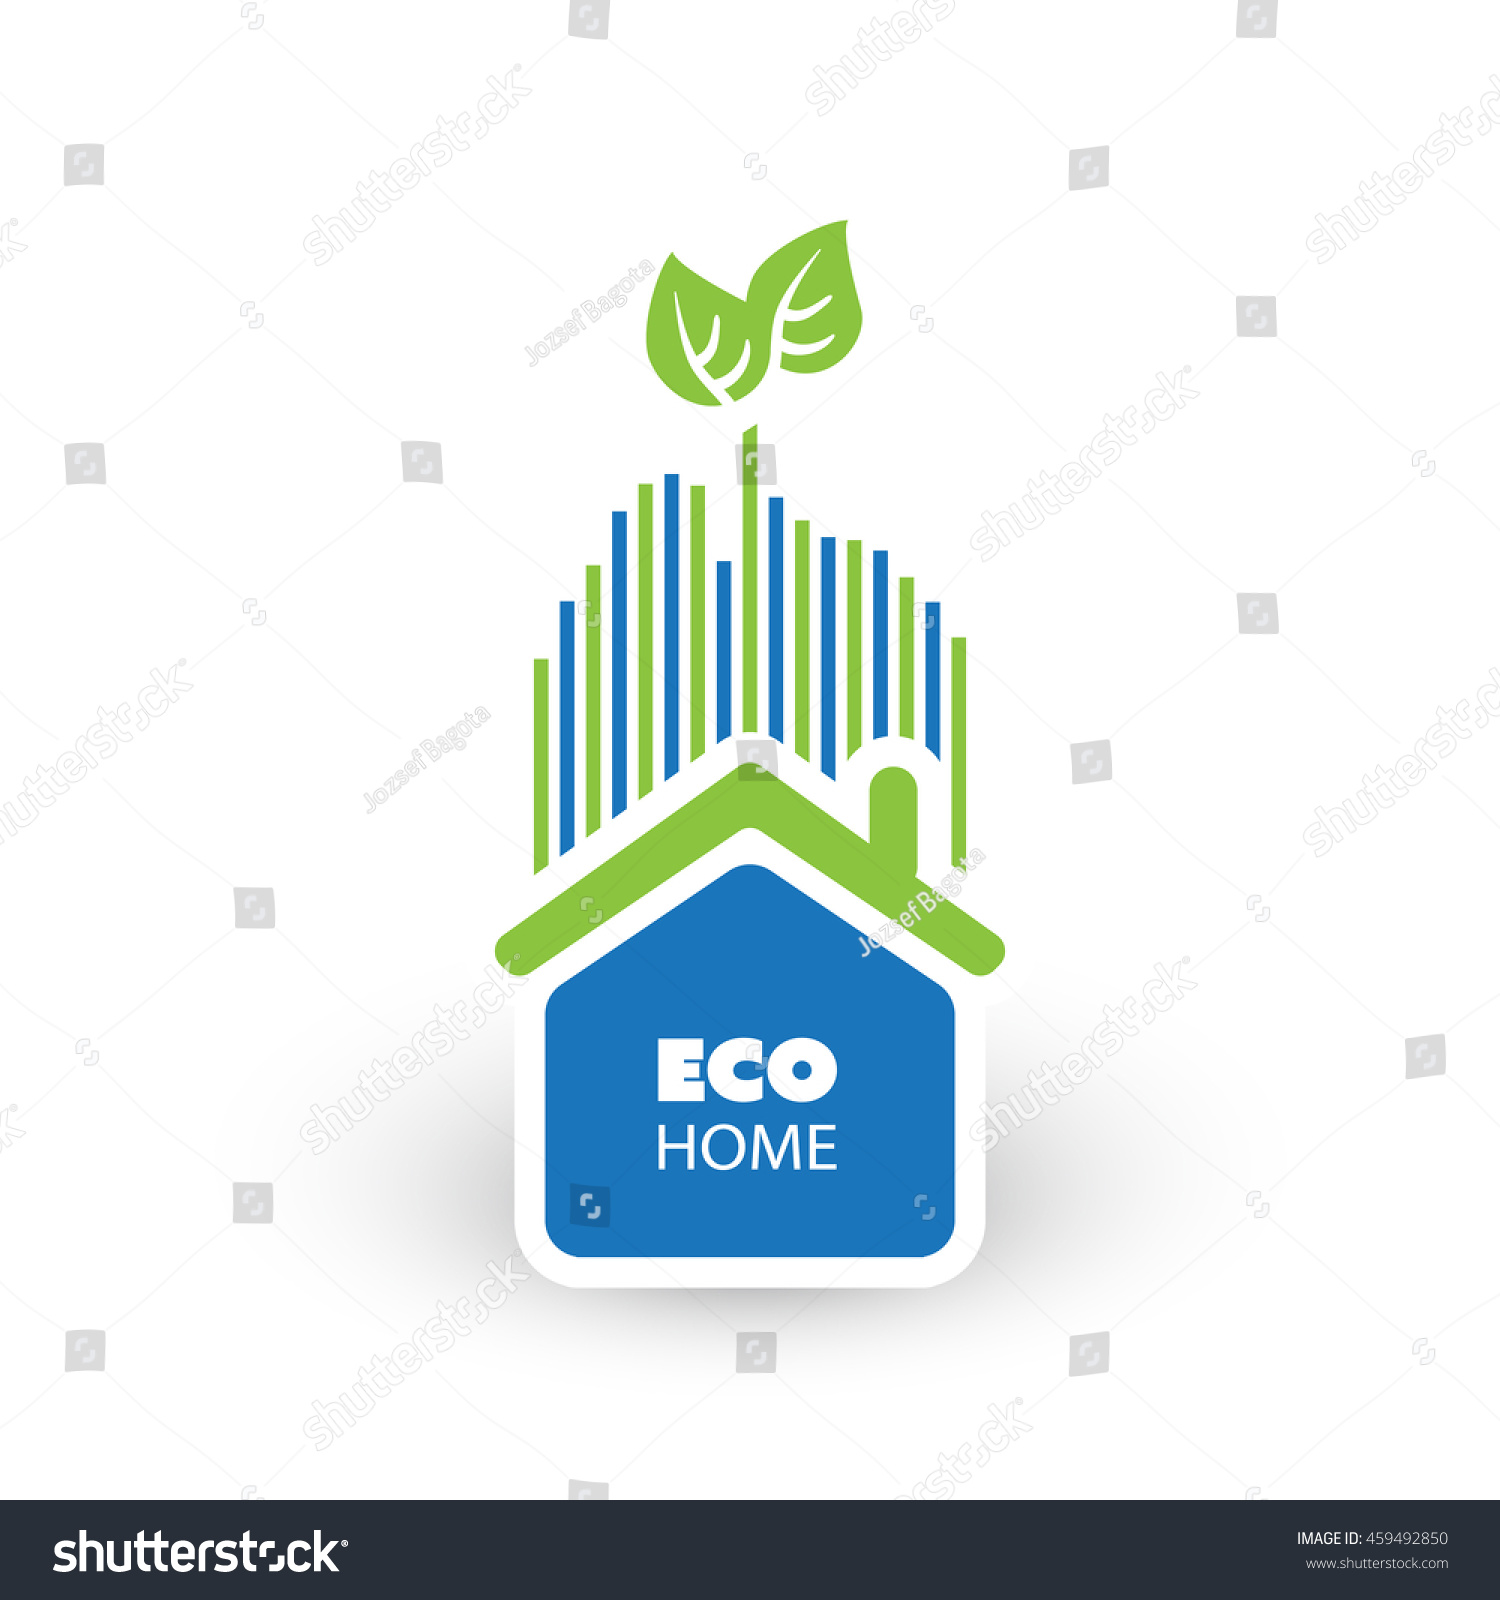 green eco friendly home concept illustration stock vector 459492850 shutterstock. Black Bedroom Furniture Sets. Home Design Ideas